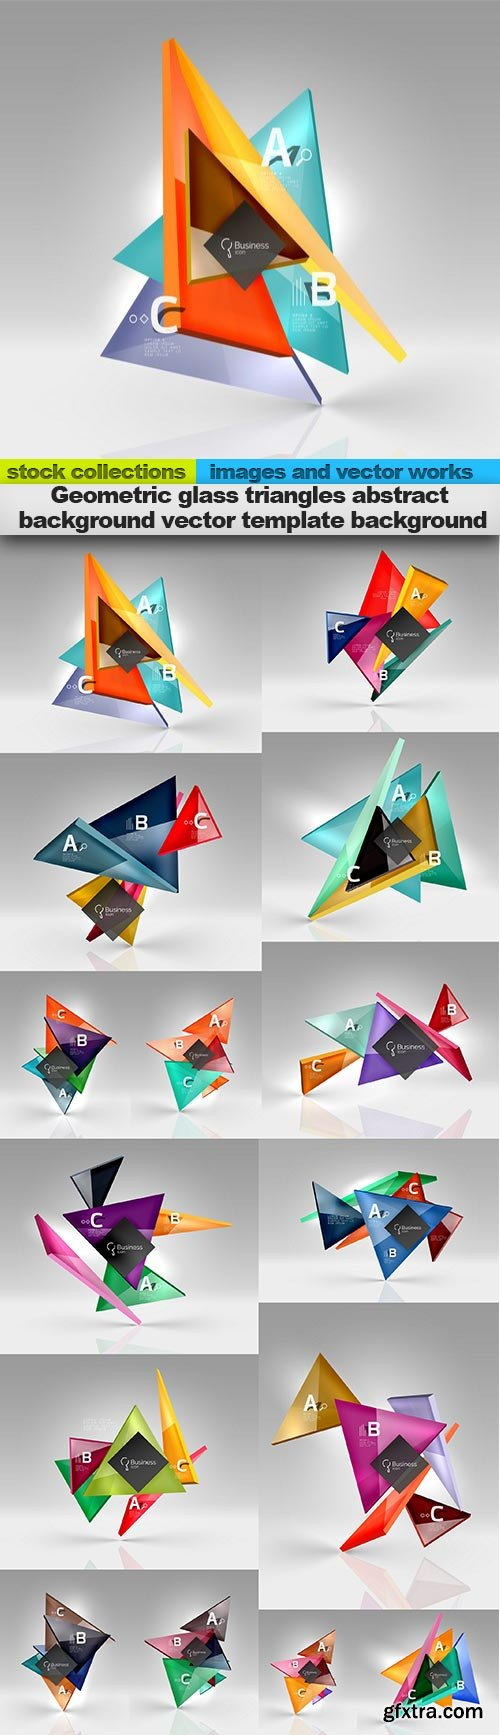 Geometric glass triangles abstract background vector template background, 15 x EPS